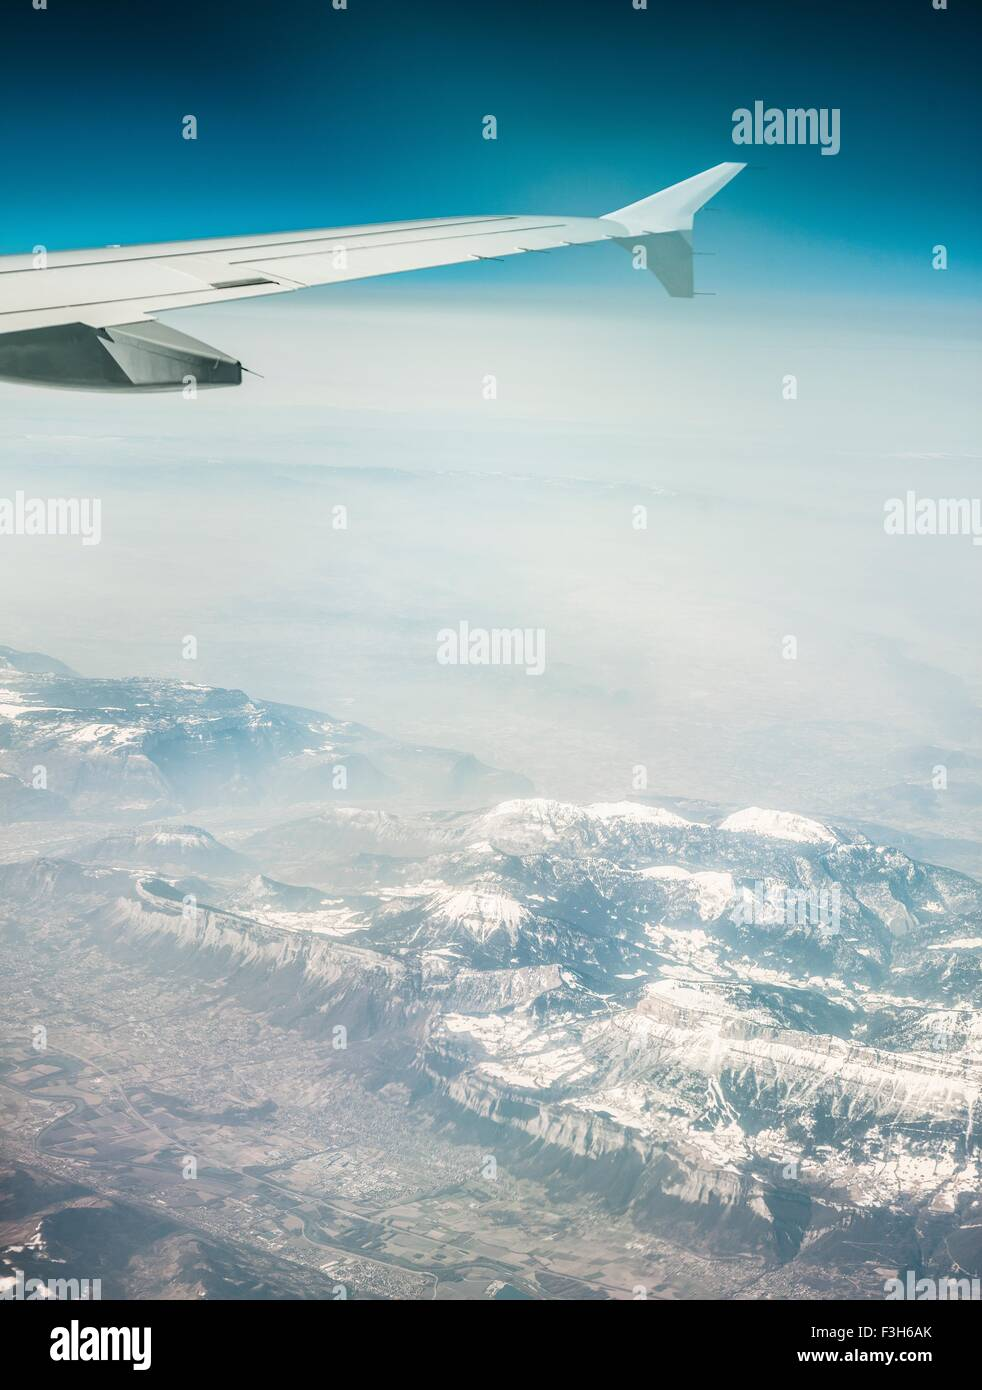 Aerial view of airplane wing and misty snow capped mountains - Stock Image